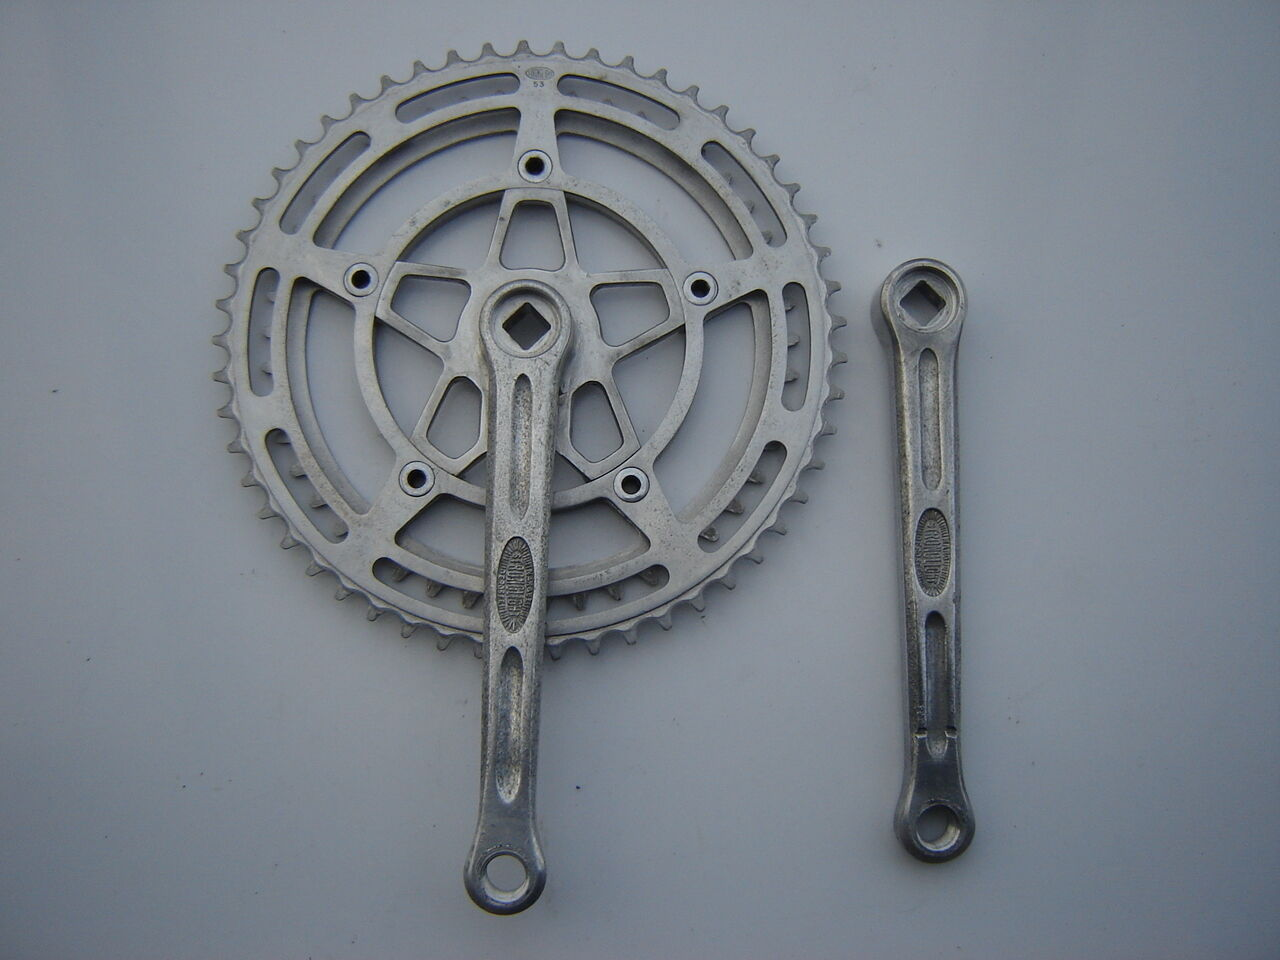 STRONGLIGHT 63  SUPER COMPETITION 45 53 CRANKSET 175 mm - RARE  new products novelty items